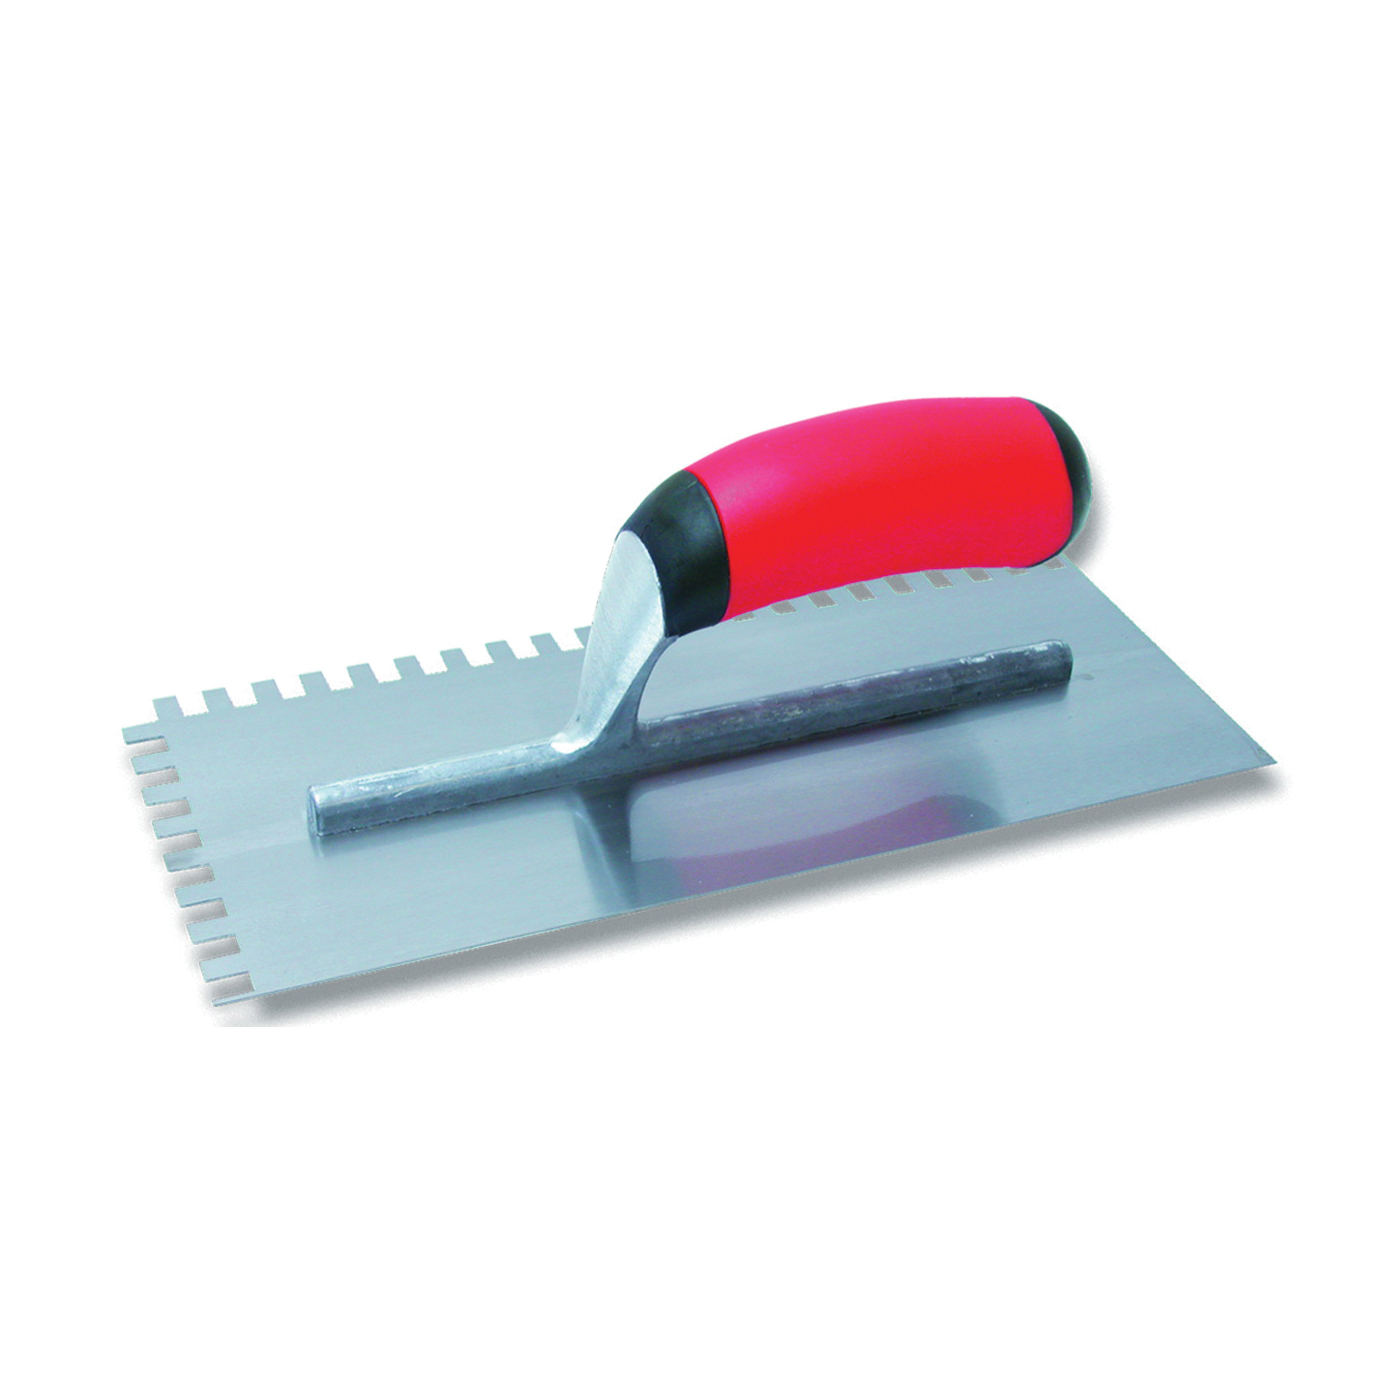 Picture of Marshalltown QLT Series 15672 Trowel, 11 in L, 4-1/2 in W, Square Notch, Soft Grip Handle